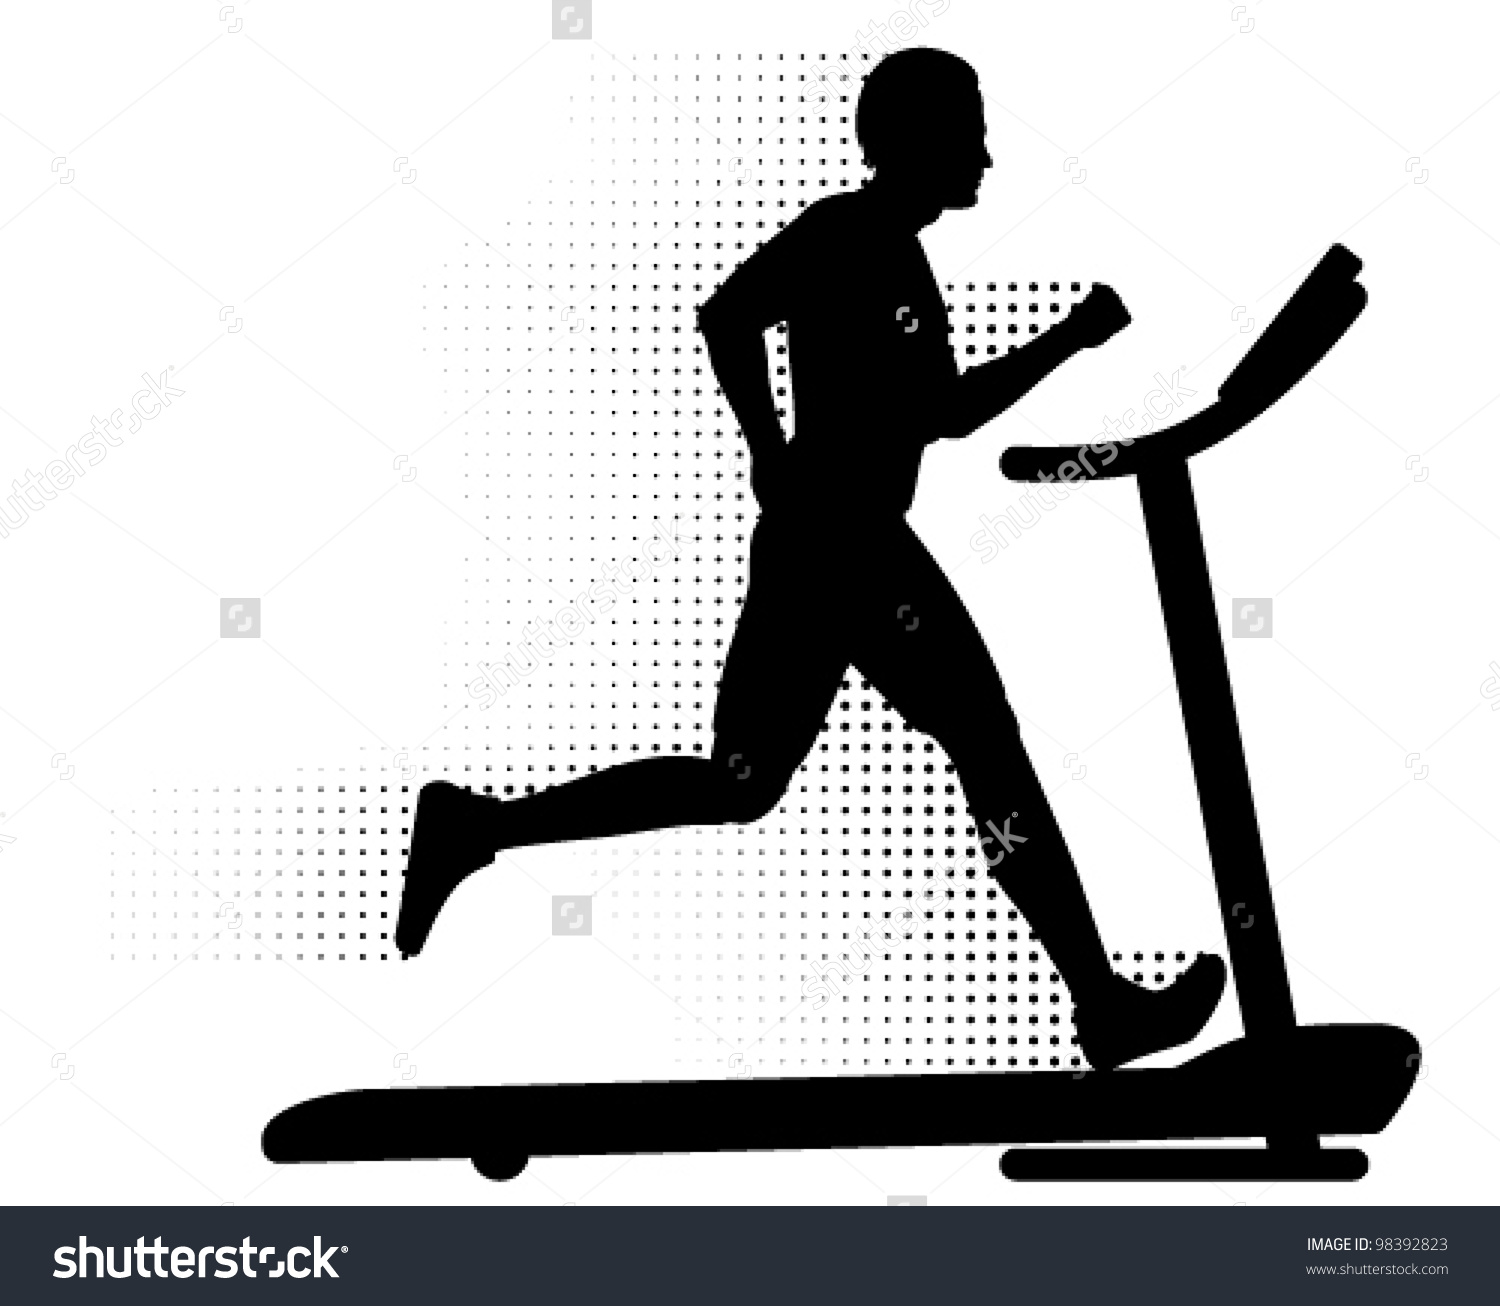 hight resolution of 1500x1306 rinning gym clipart explore pictures